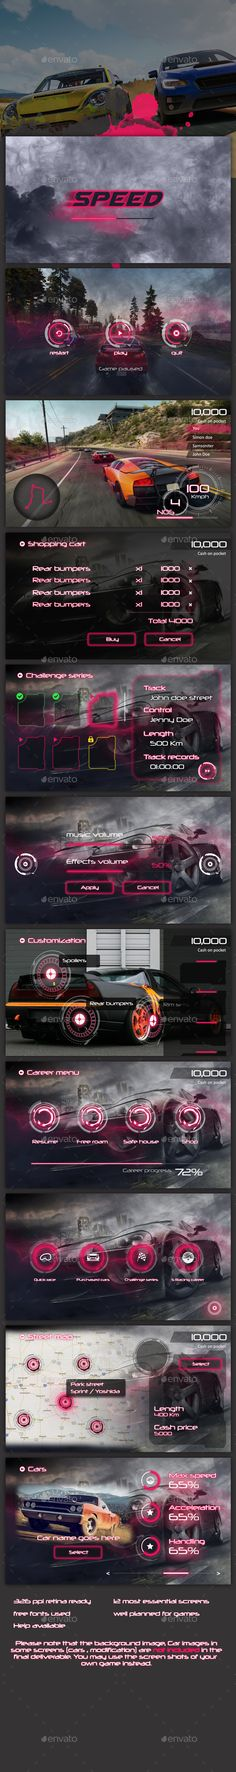 Sci-fi Racing Game UI - #User #Interfaces #Game Assets Download here: https://graphicriver.net/item/scifi-racing-game-ui/19649746?ref=alena994